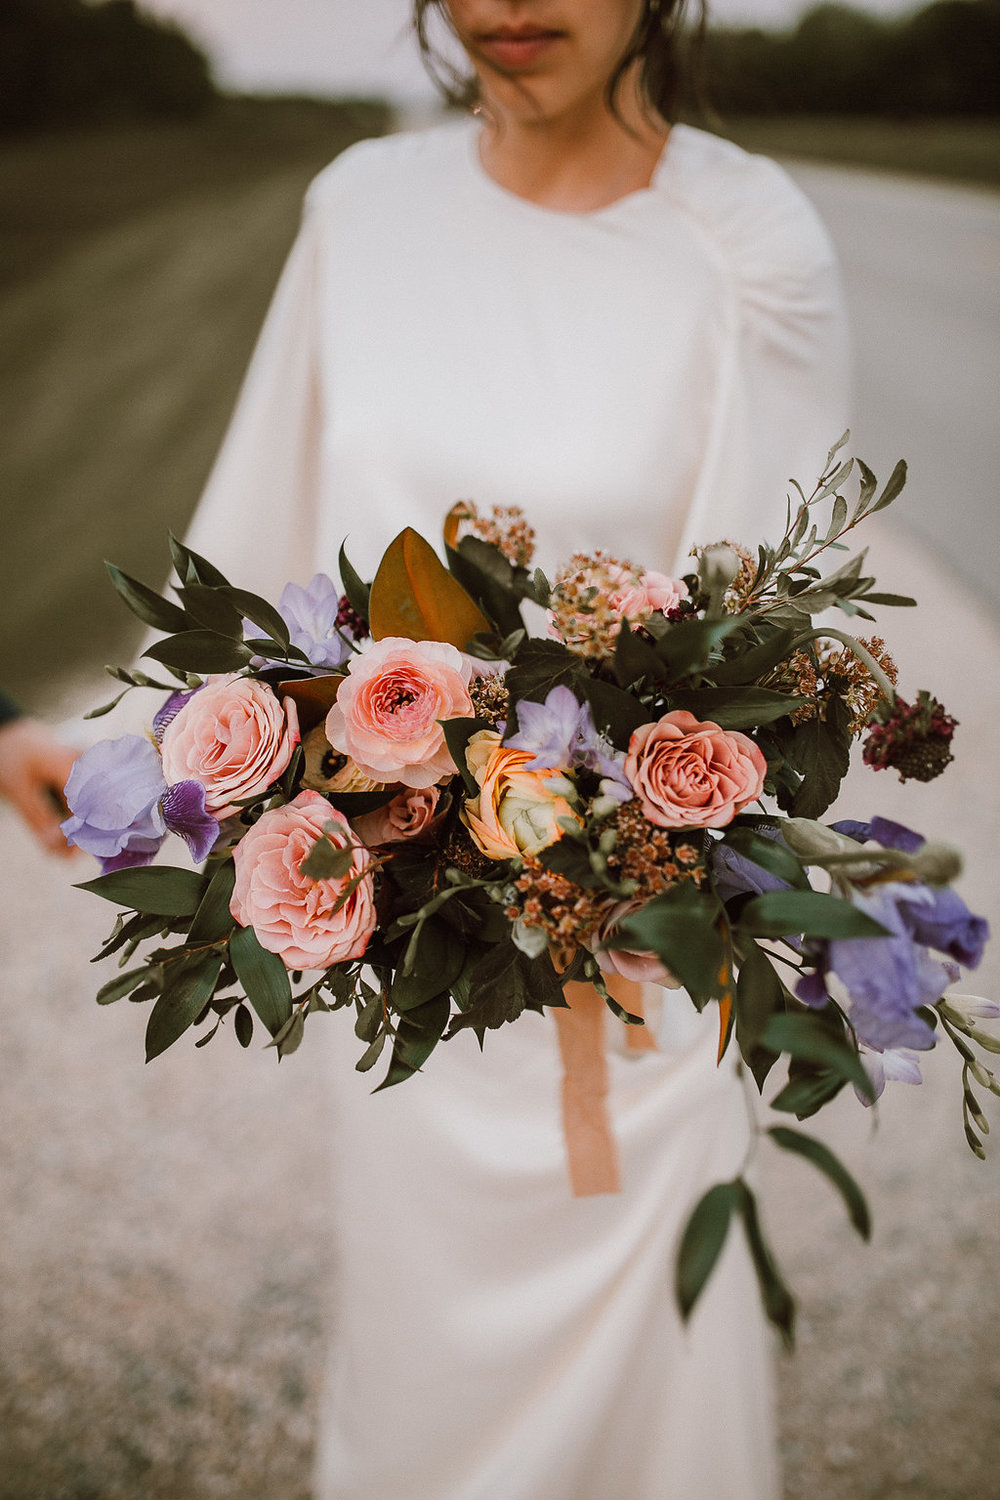 Peach and Mauve Wedding Bouquet - Stone House Creative